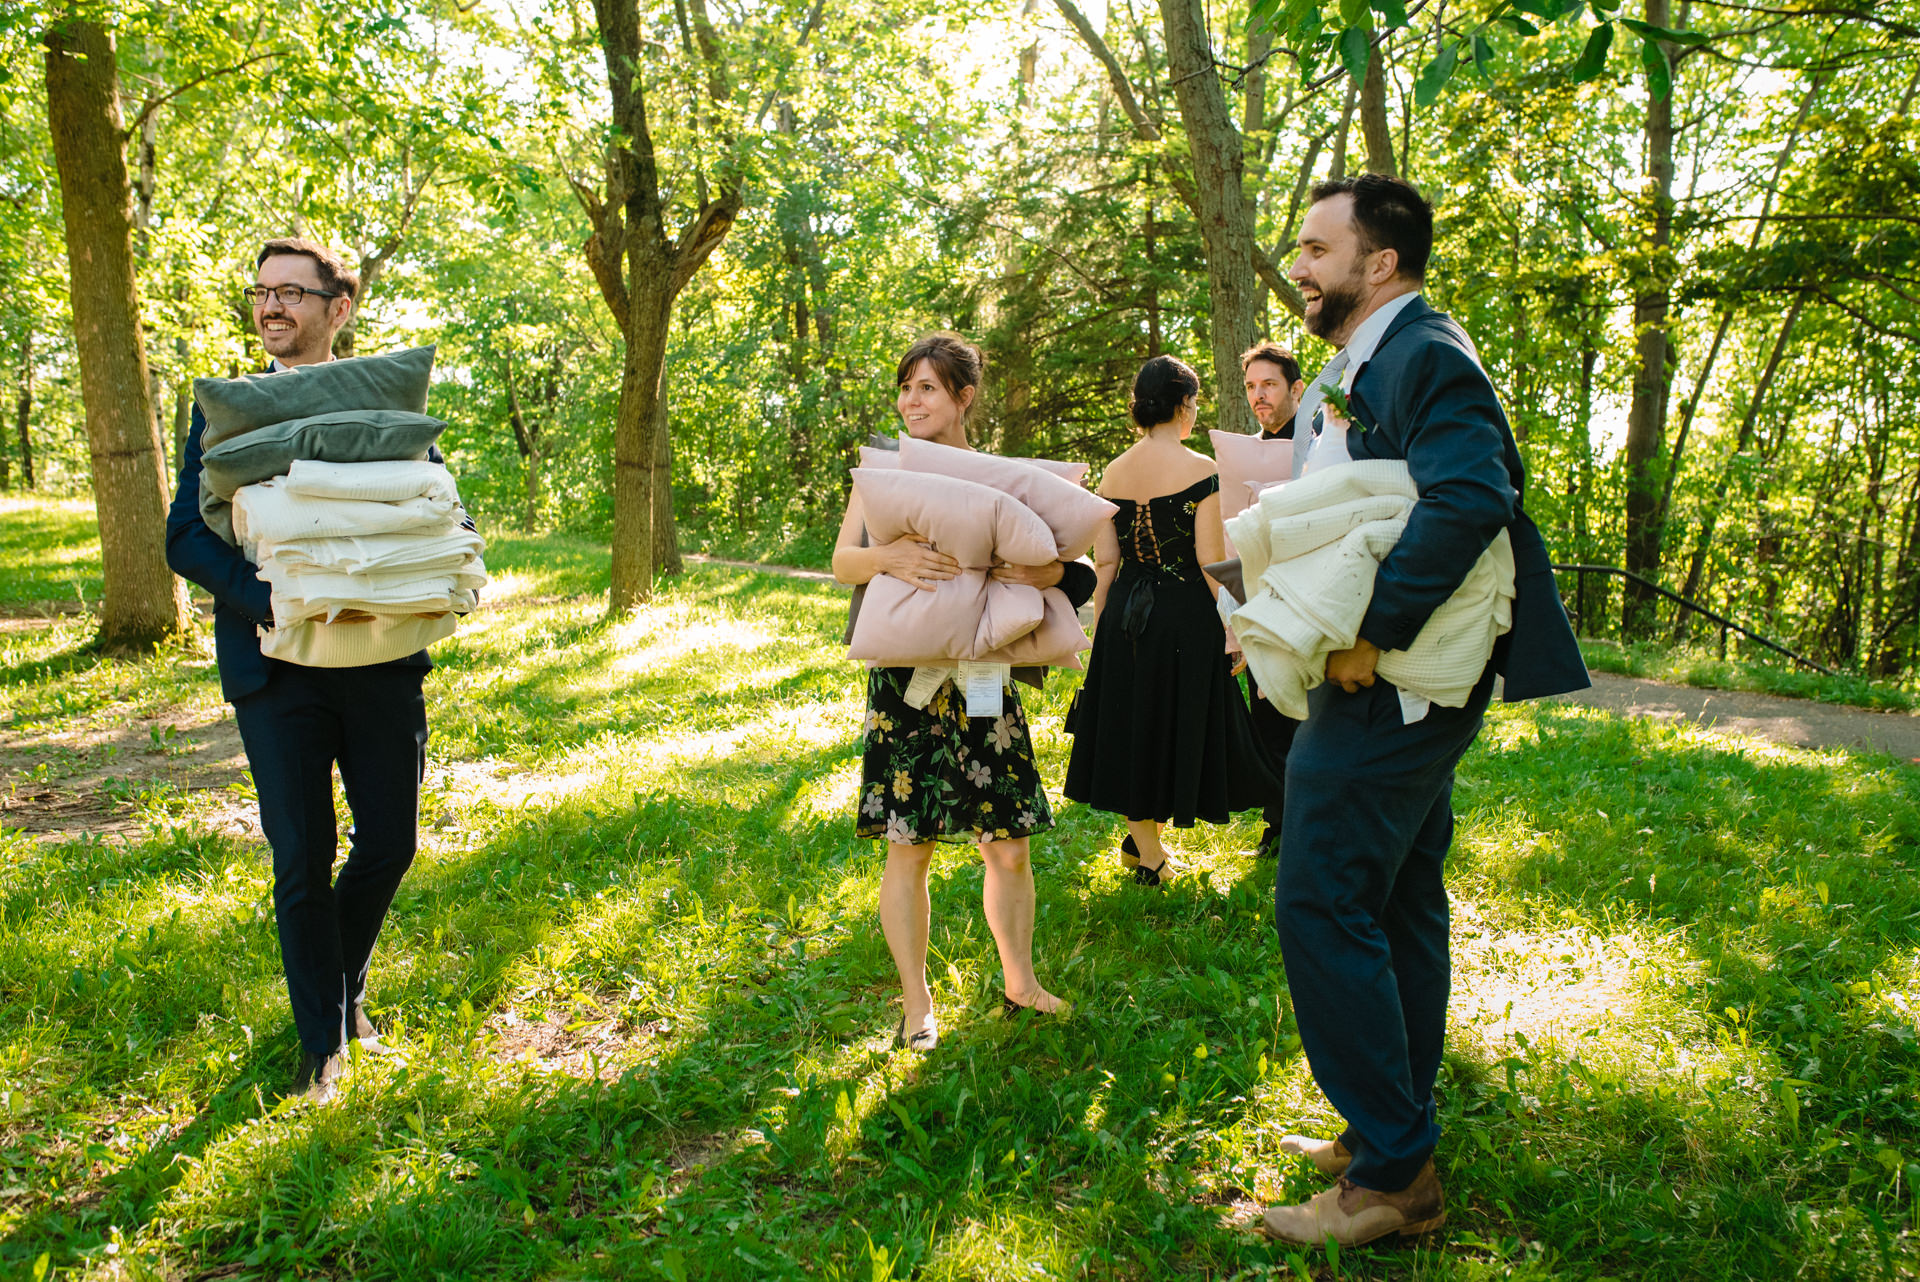 Mount Royal Park, Montreal, Quebec, Canada Wedding Image | Friends of the wedding couple helped carry all the decor